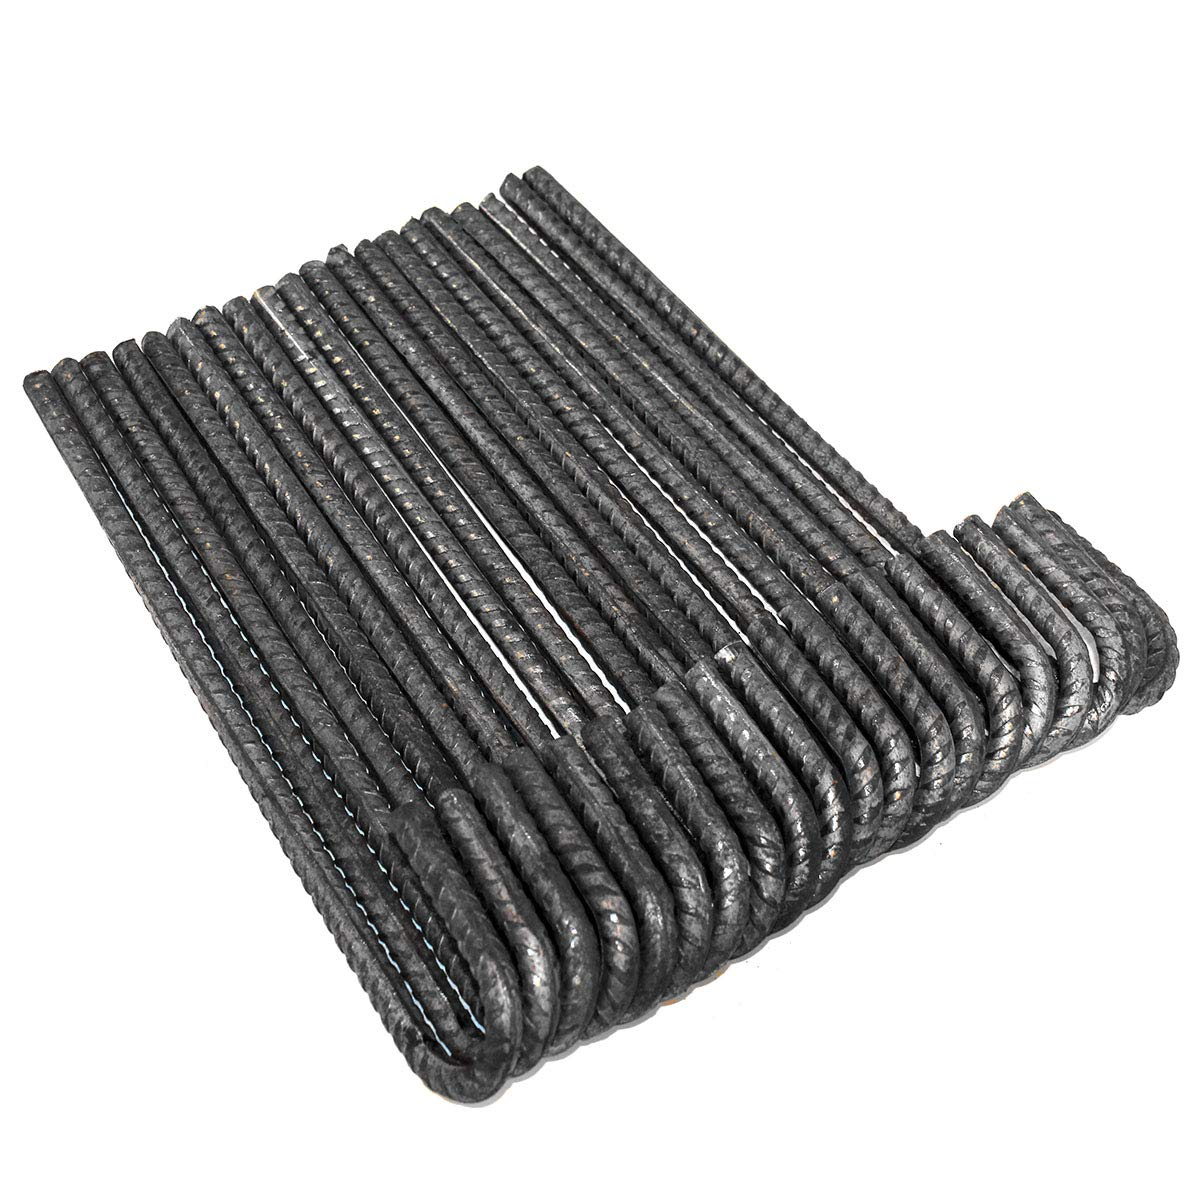 XL Rebars 20-pack